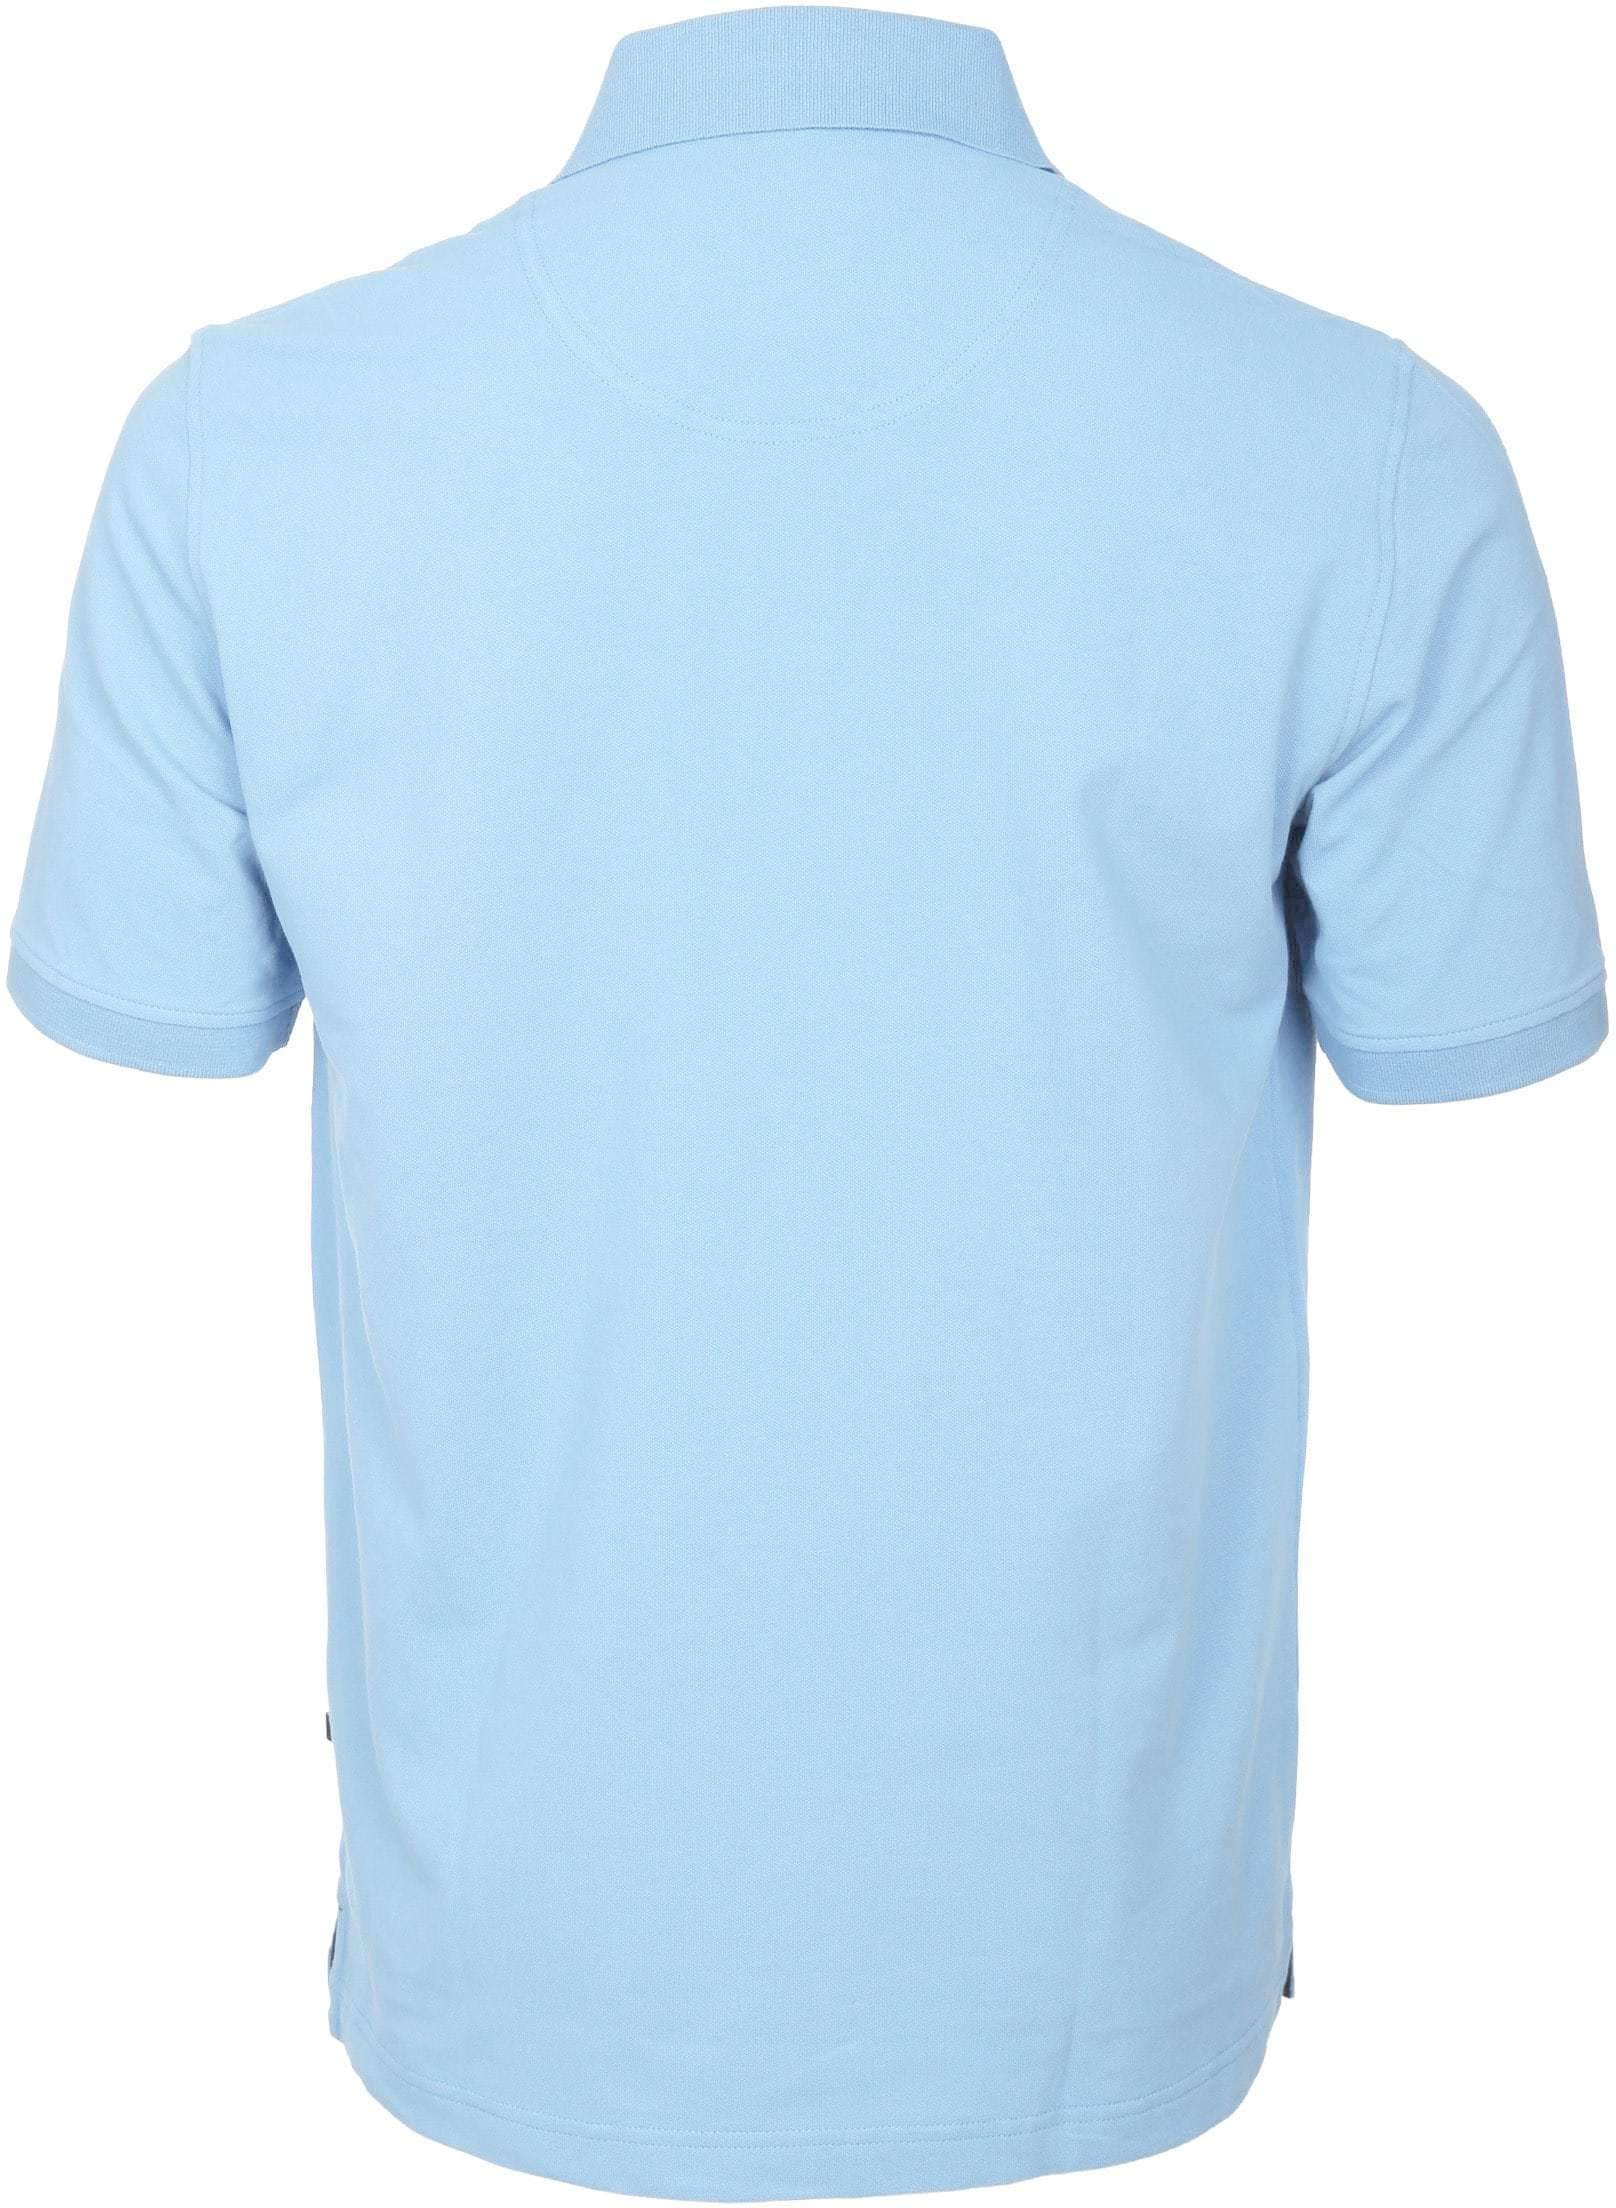 Suitable Poloshirt Basic Hellblau foto 4